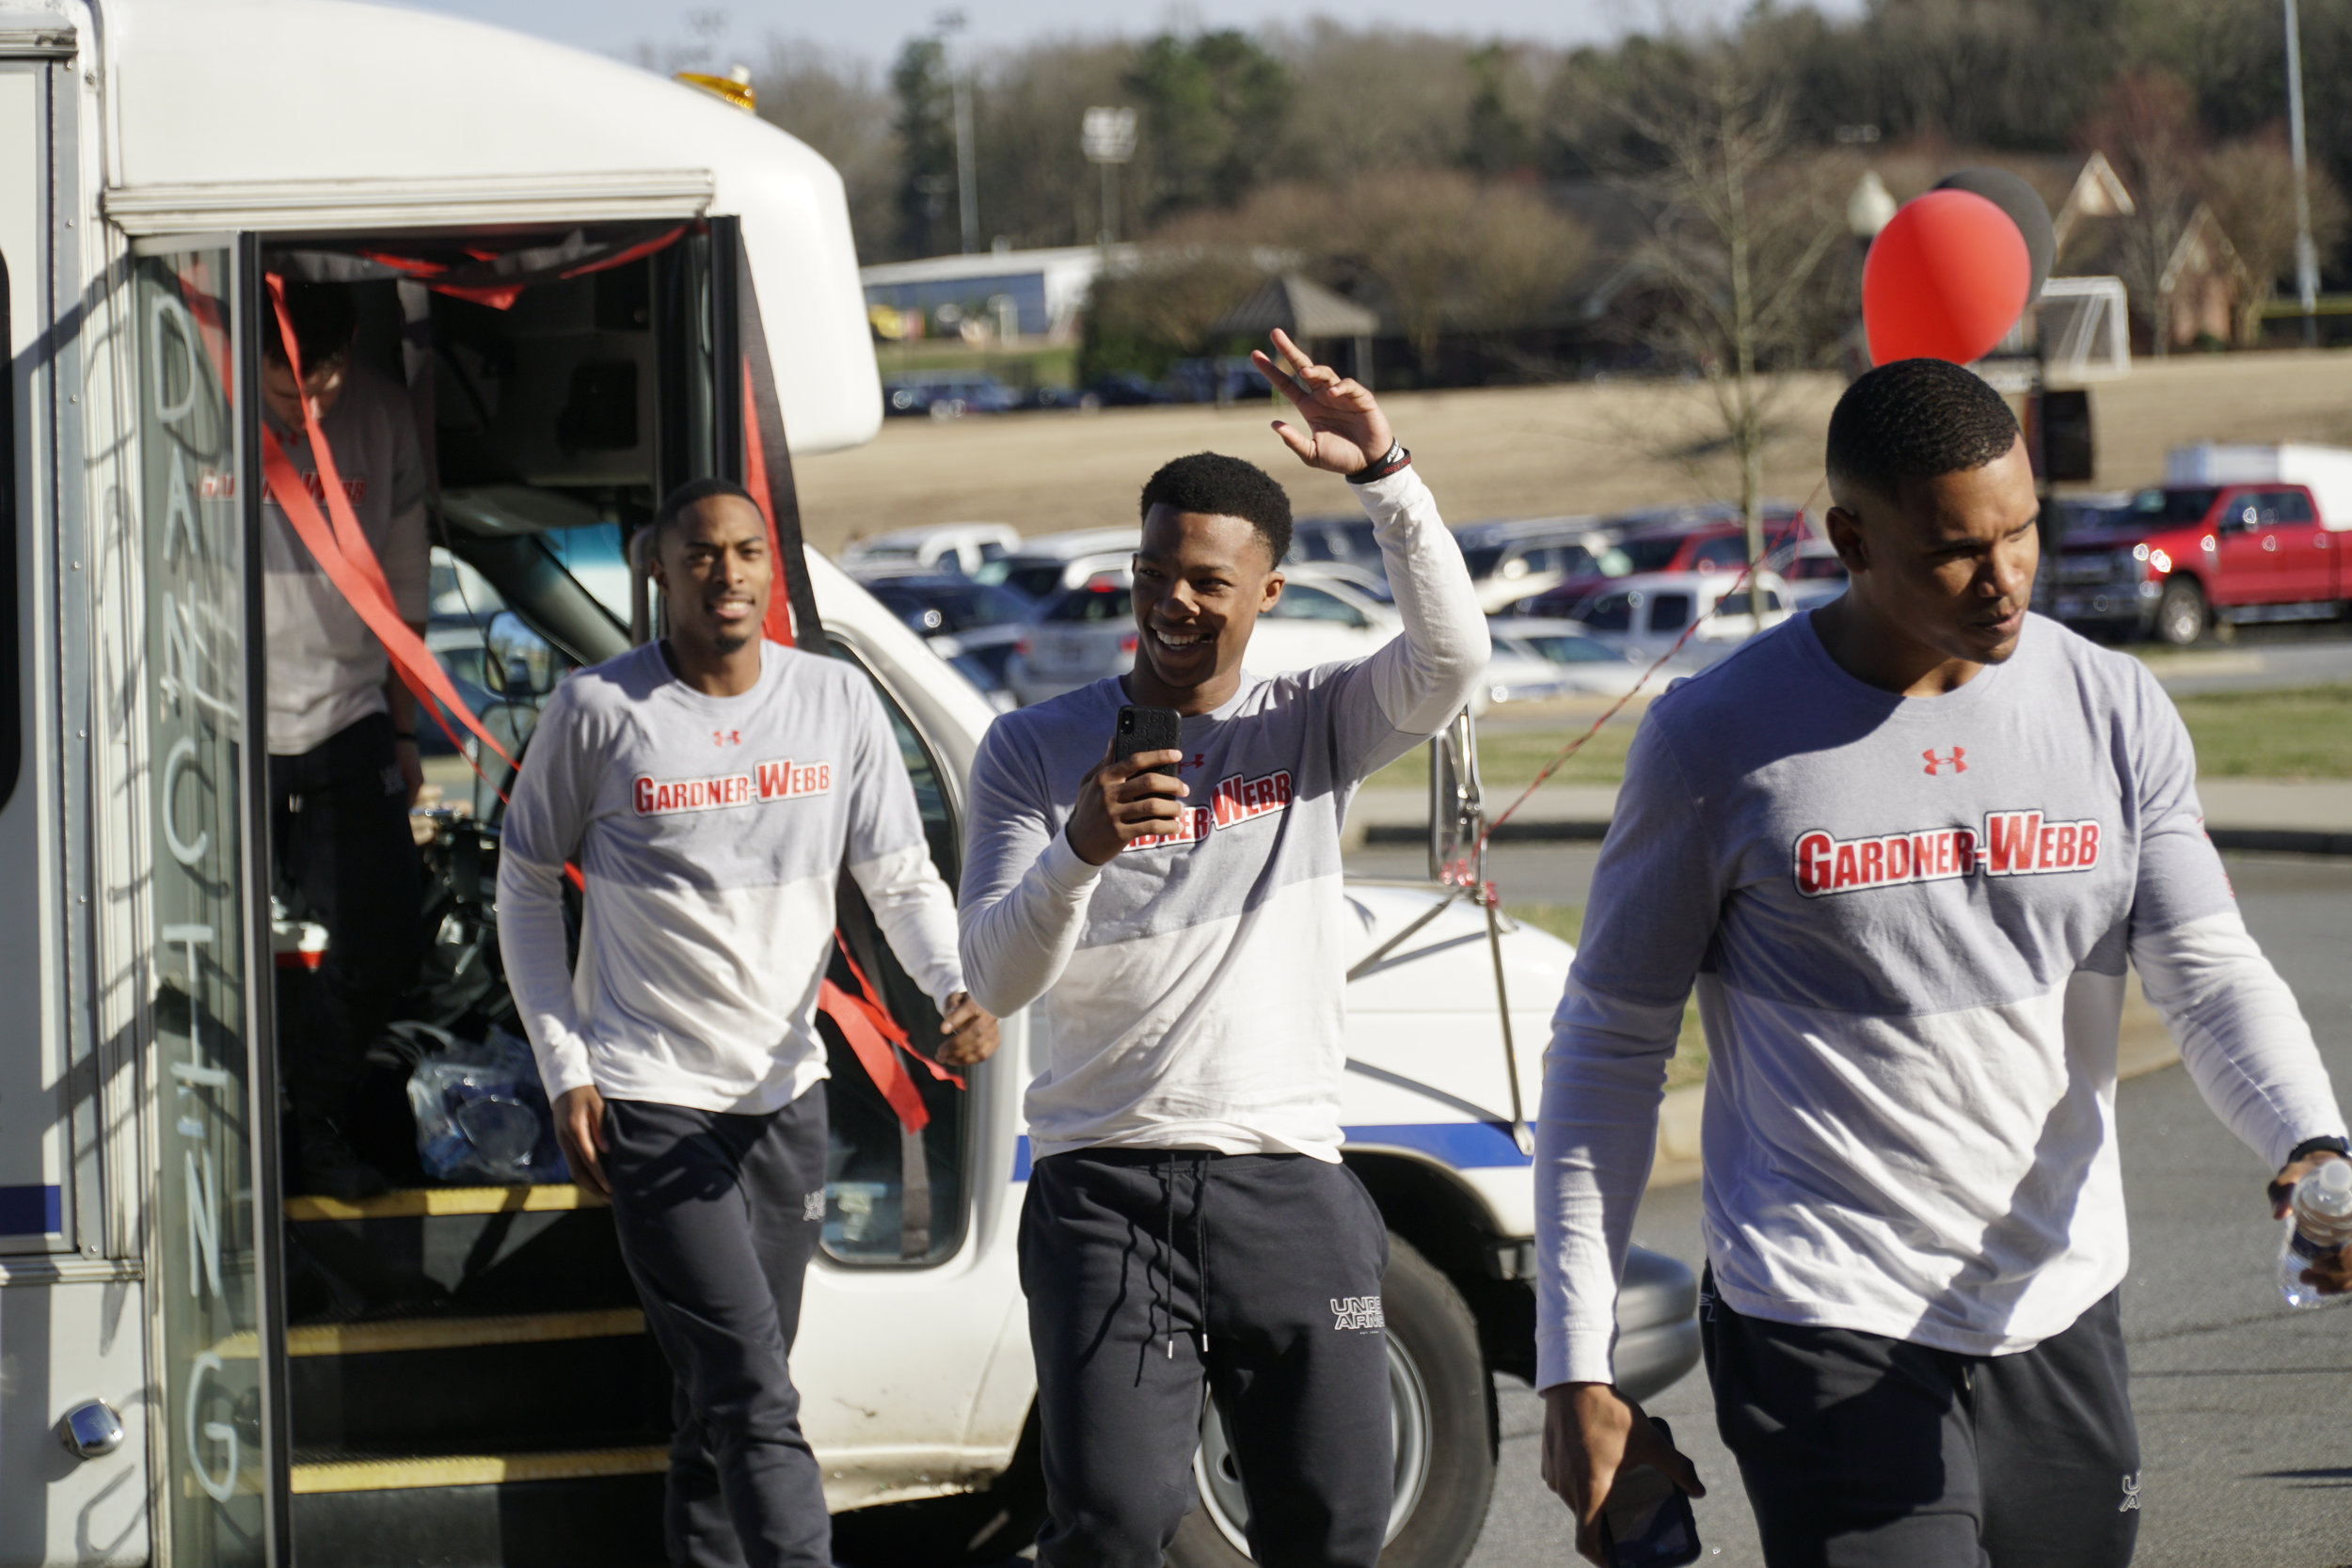 Basketball players exit the bus that dropped them off at the Tucker Student Center.